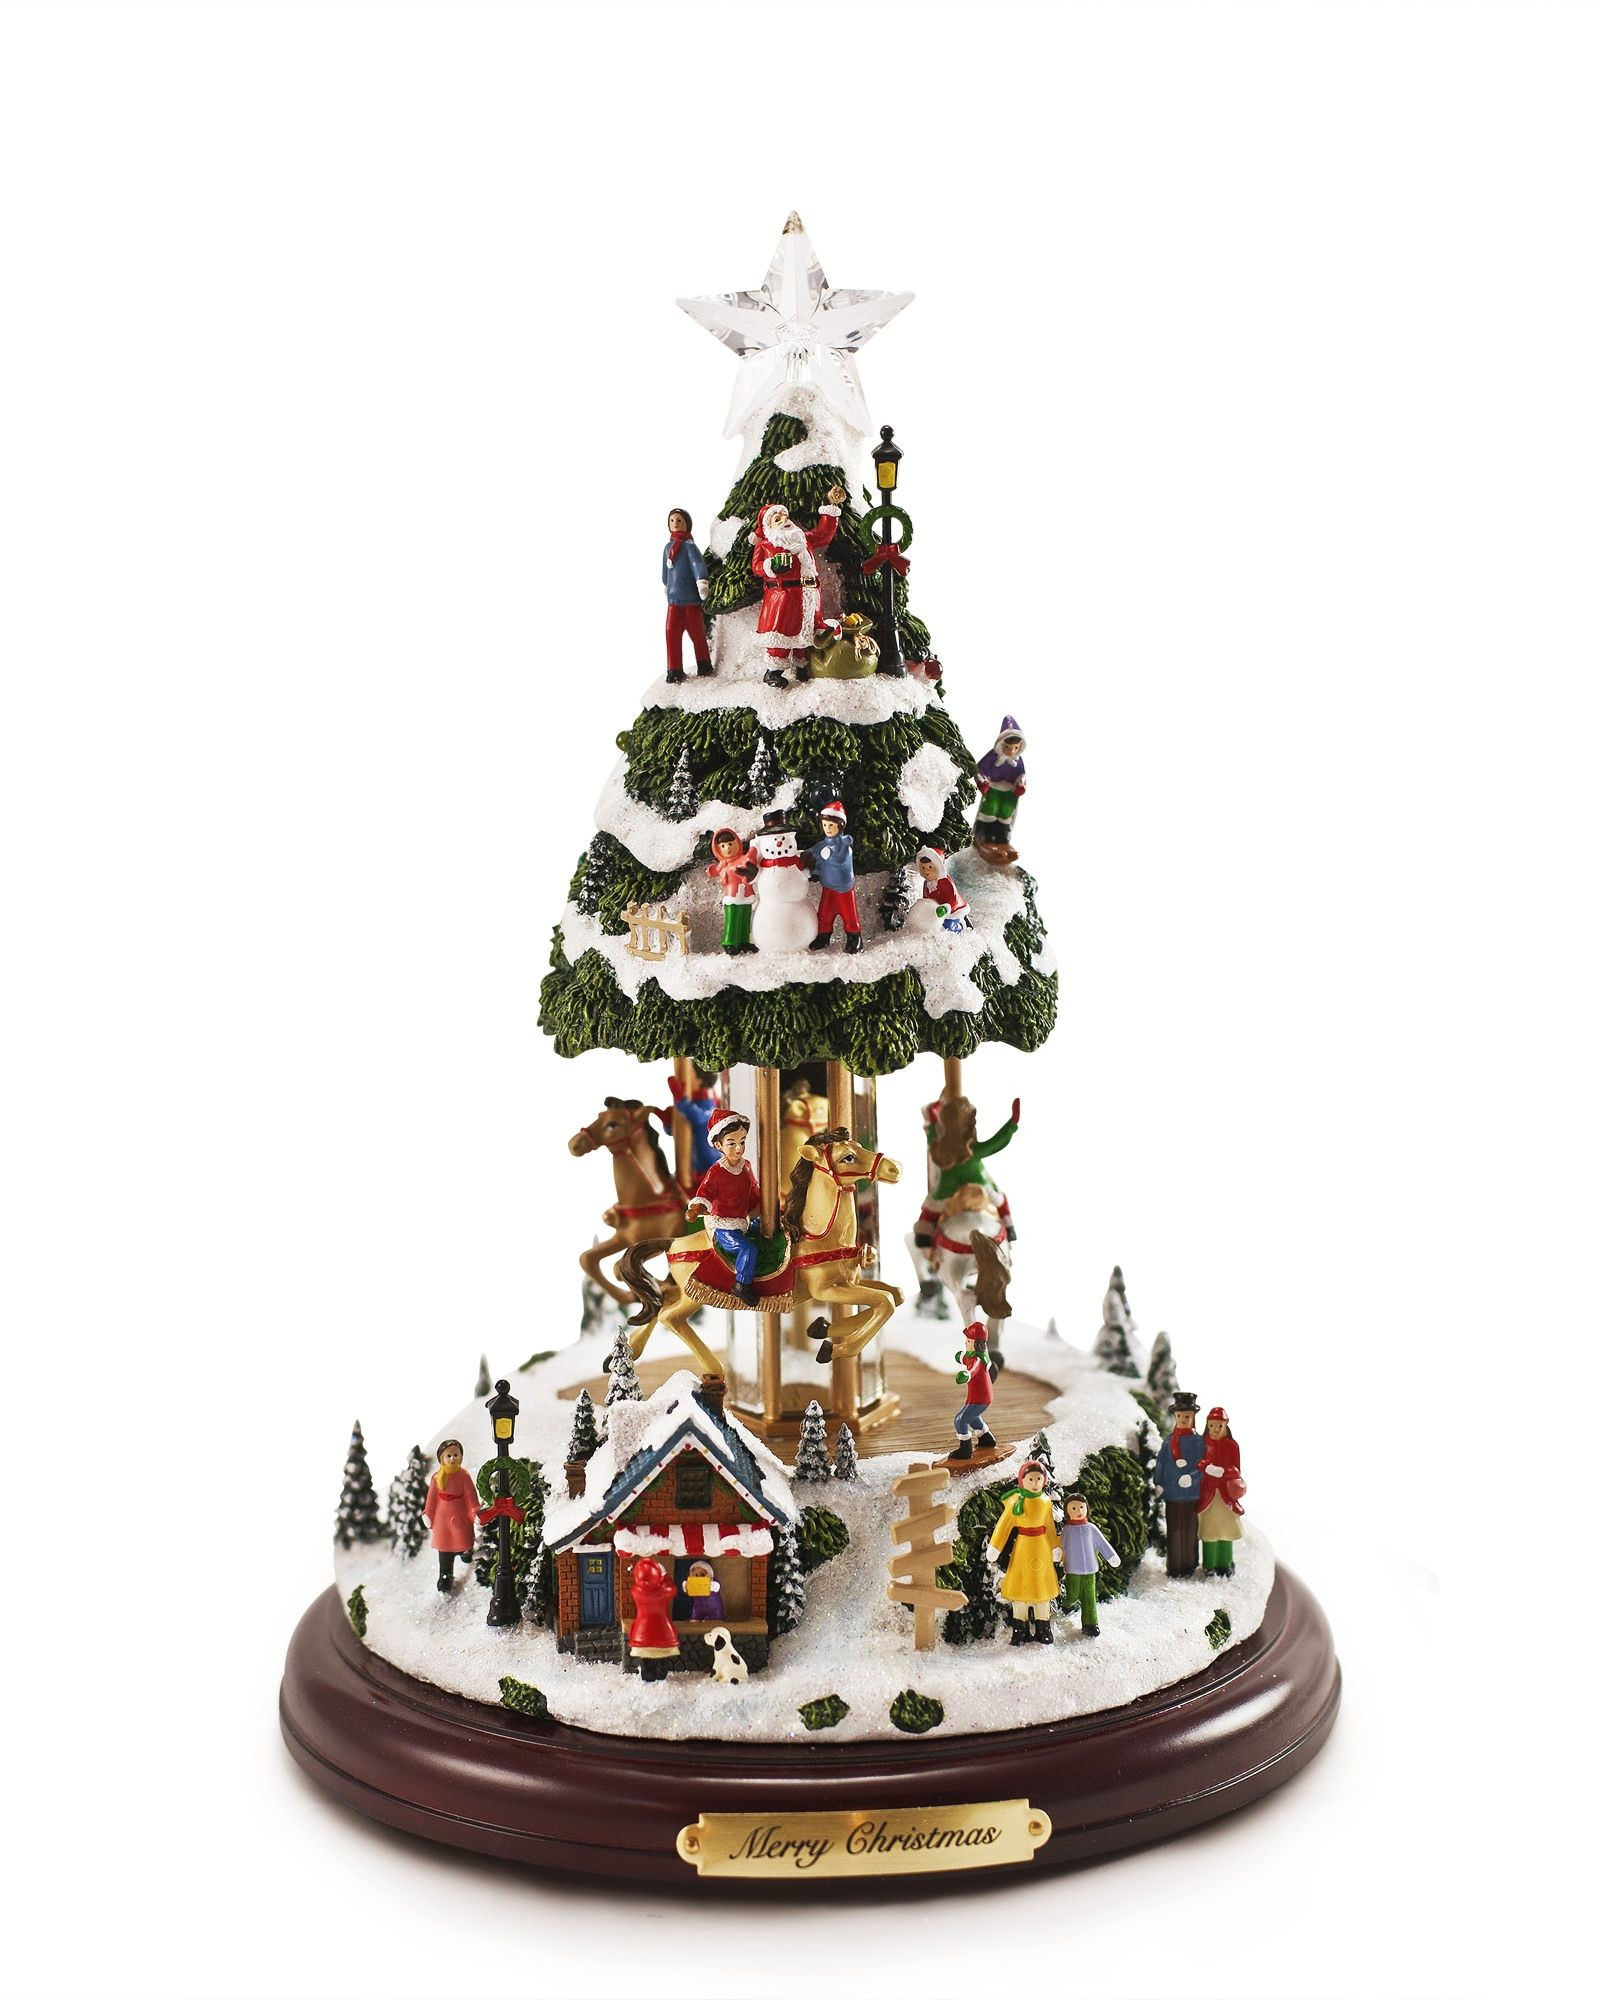 DIY Animated Christmas Decorations  Our Animated Musical Tree is a miniature Christmas village